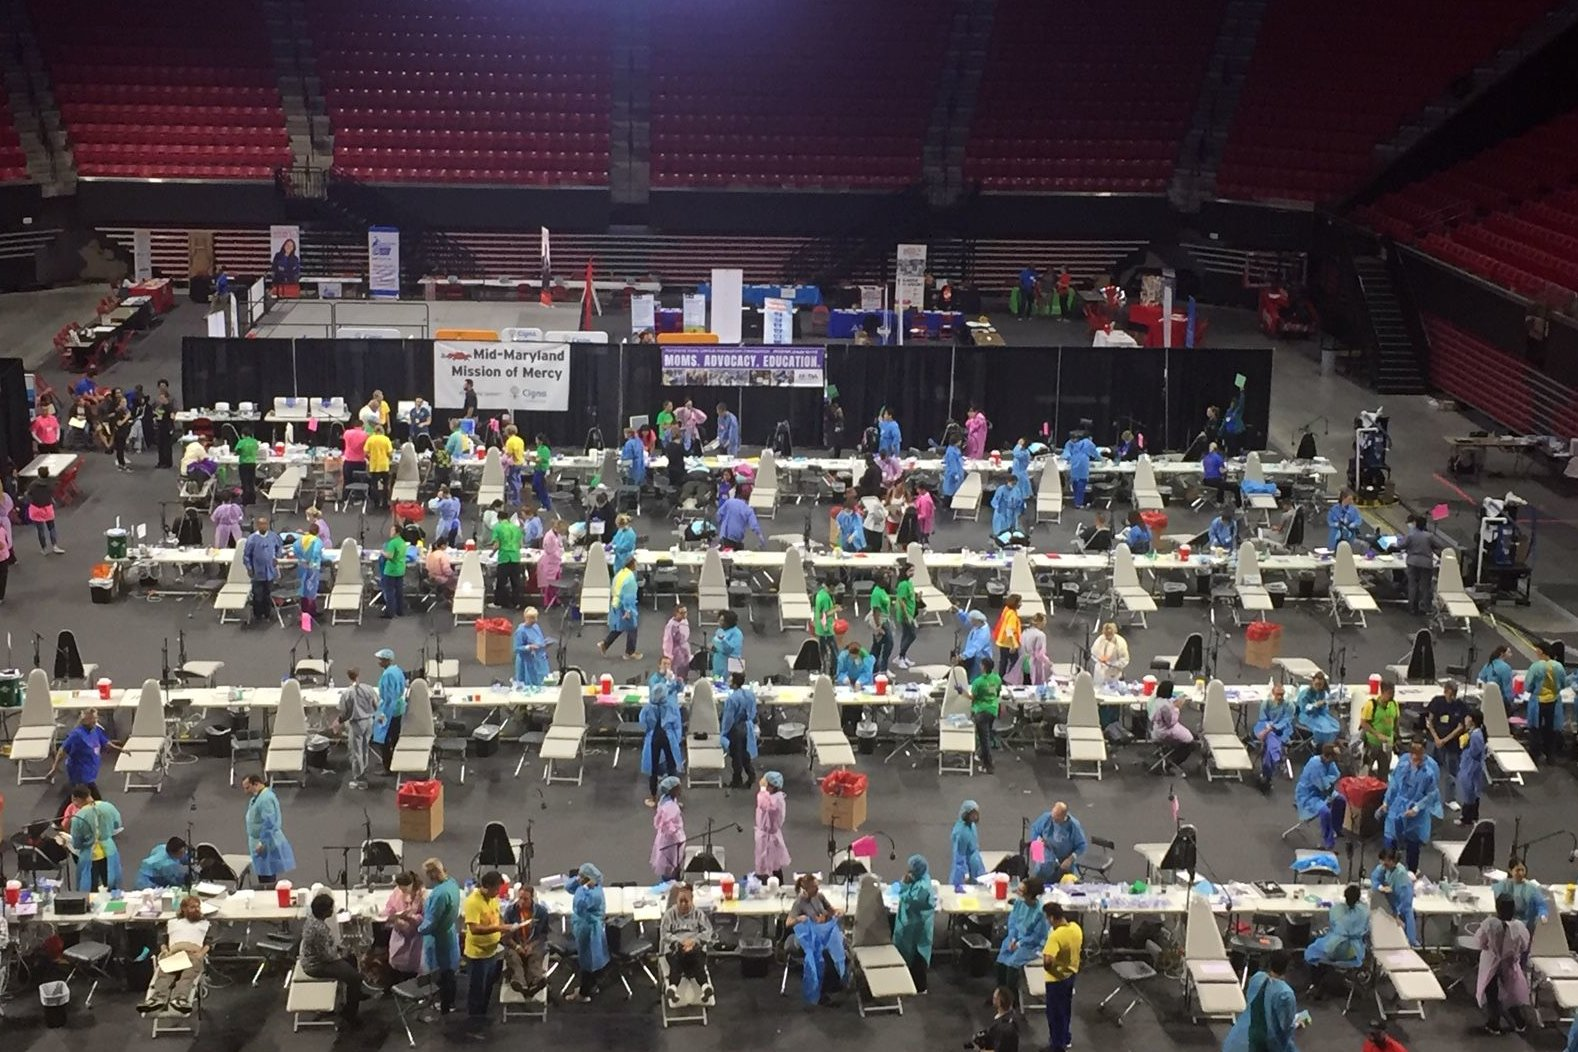 The Xfinity Center in College Park, Maryland, was converted to house scores of dentists, patients and medical equipment for free dental service on Sept. 13 and 14.